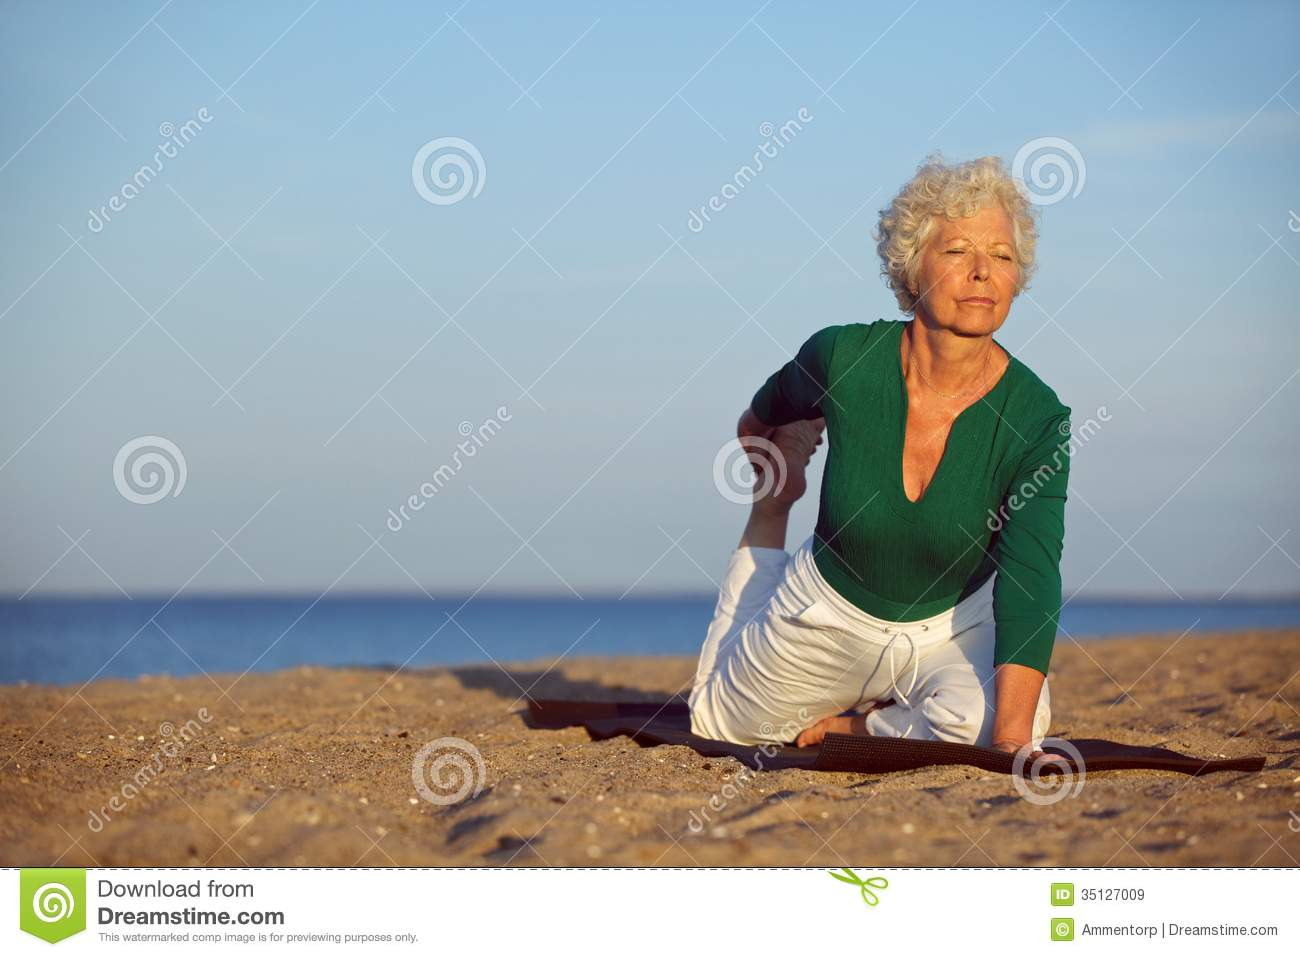 old woman nudist in beach